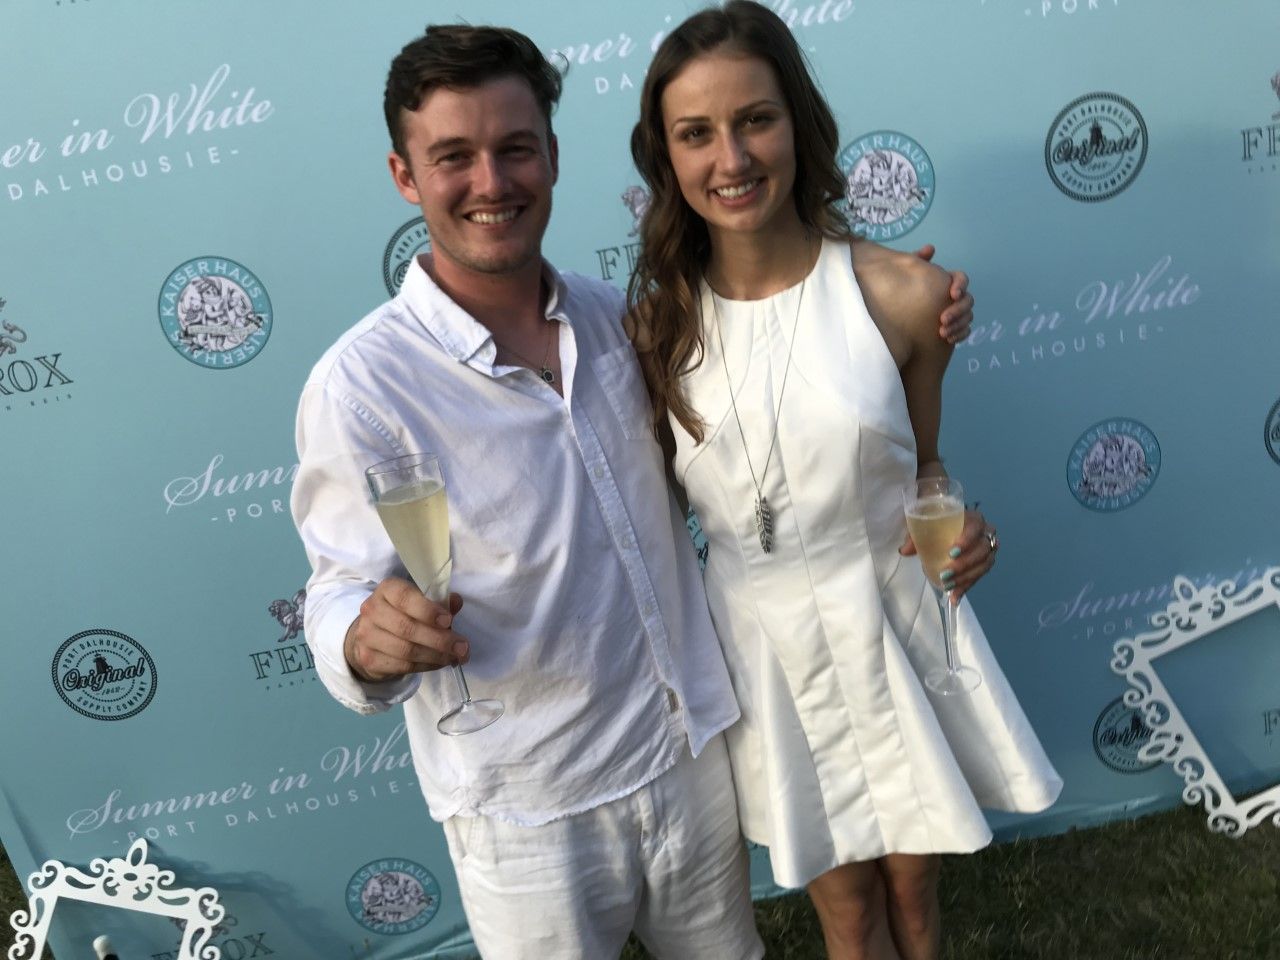 Christopher O'Connor & Connie Stanclik at Summer in White 2018